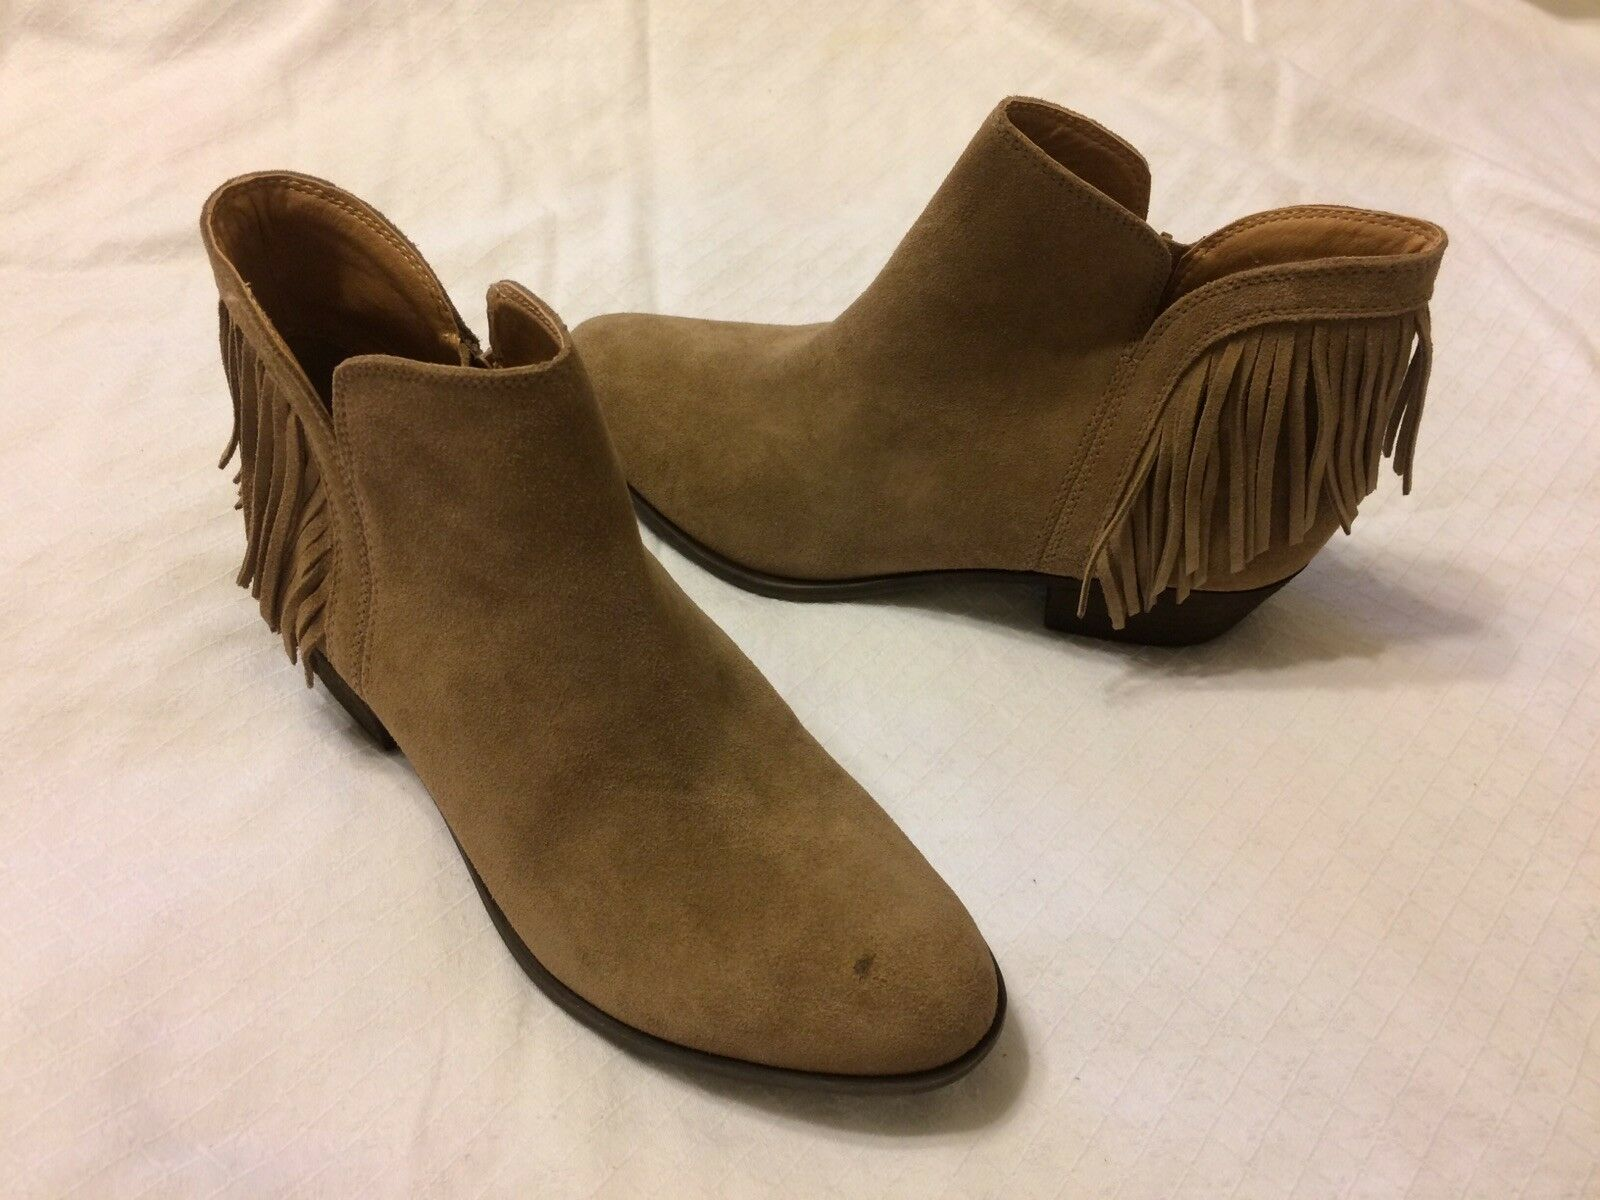 LUCKY BRAND BENJI FRINGE ANKLE BOOTS TAN BROWN SUEDE WOMENS SIZE 8.5 M NWOB